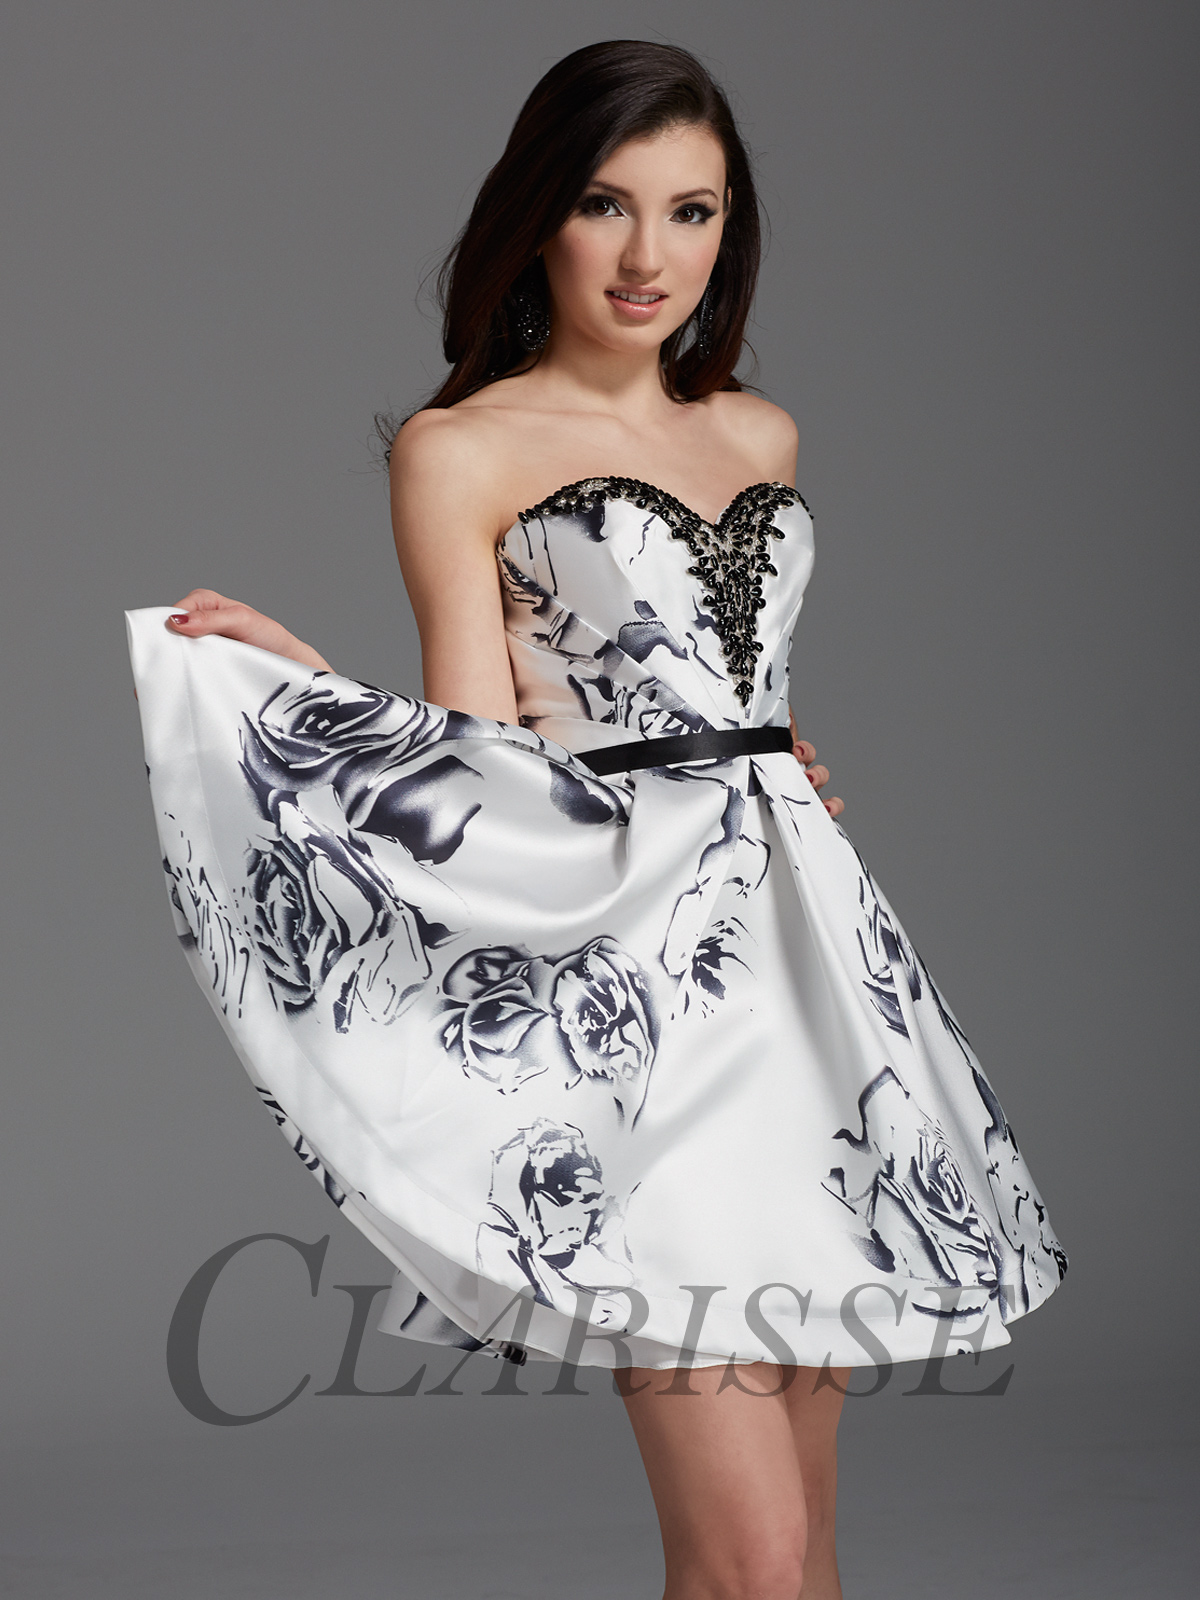 Clarisse Homecoming Dress 2916 | Promgirl.net